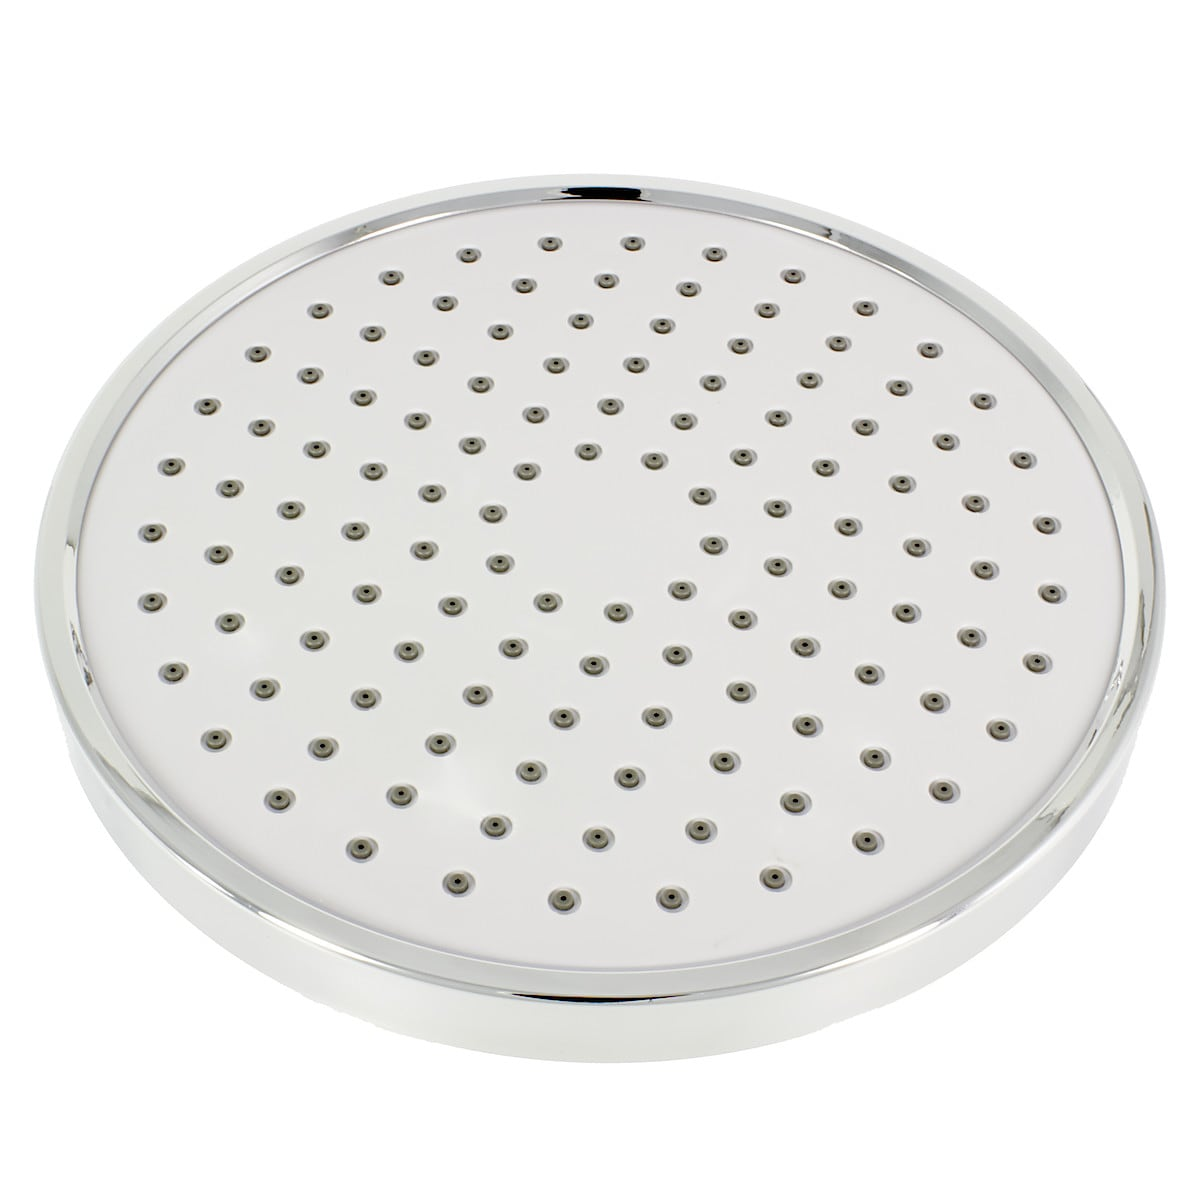 Ceiling shower head 200 mm